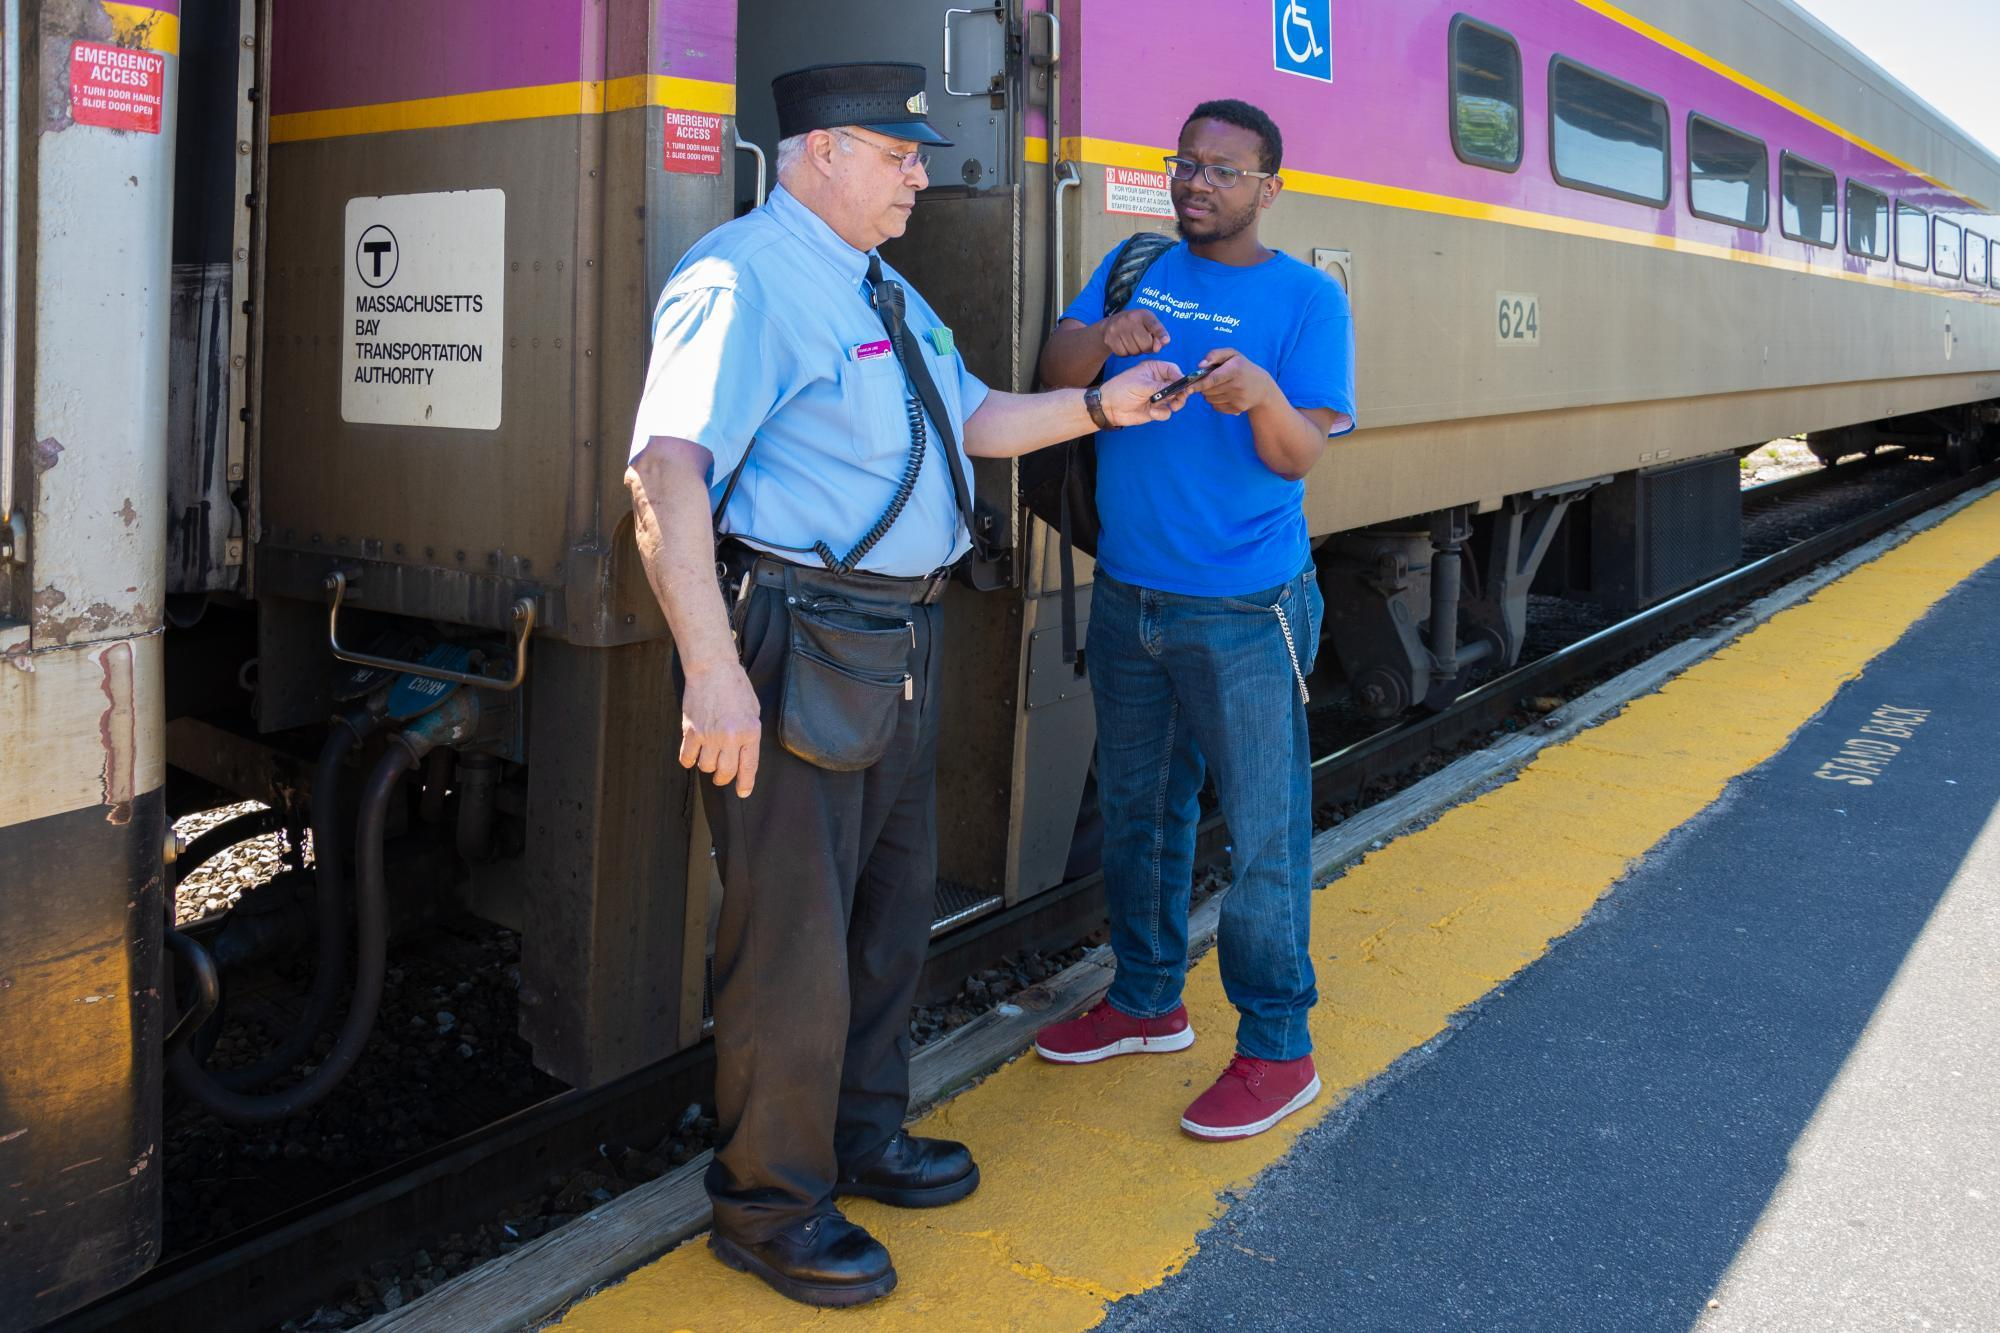 commuter rail conductor assisting customer